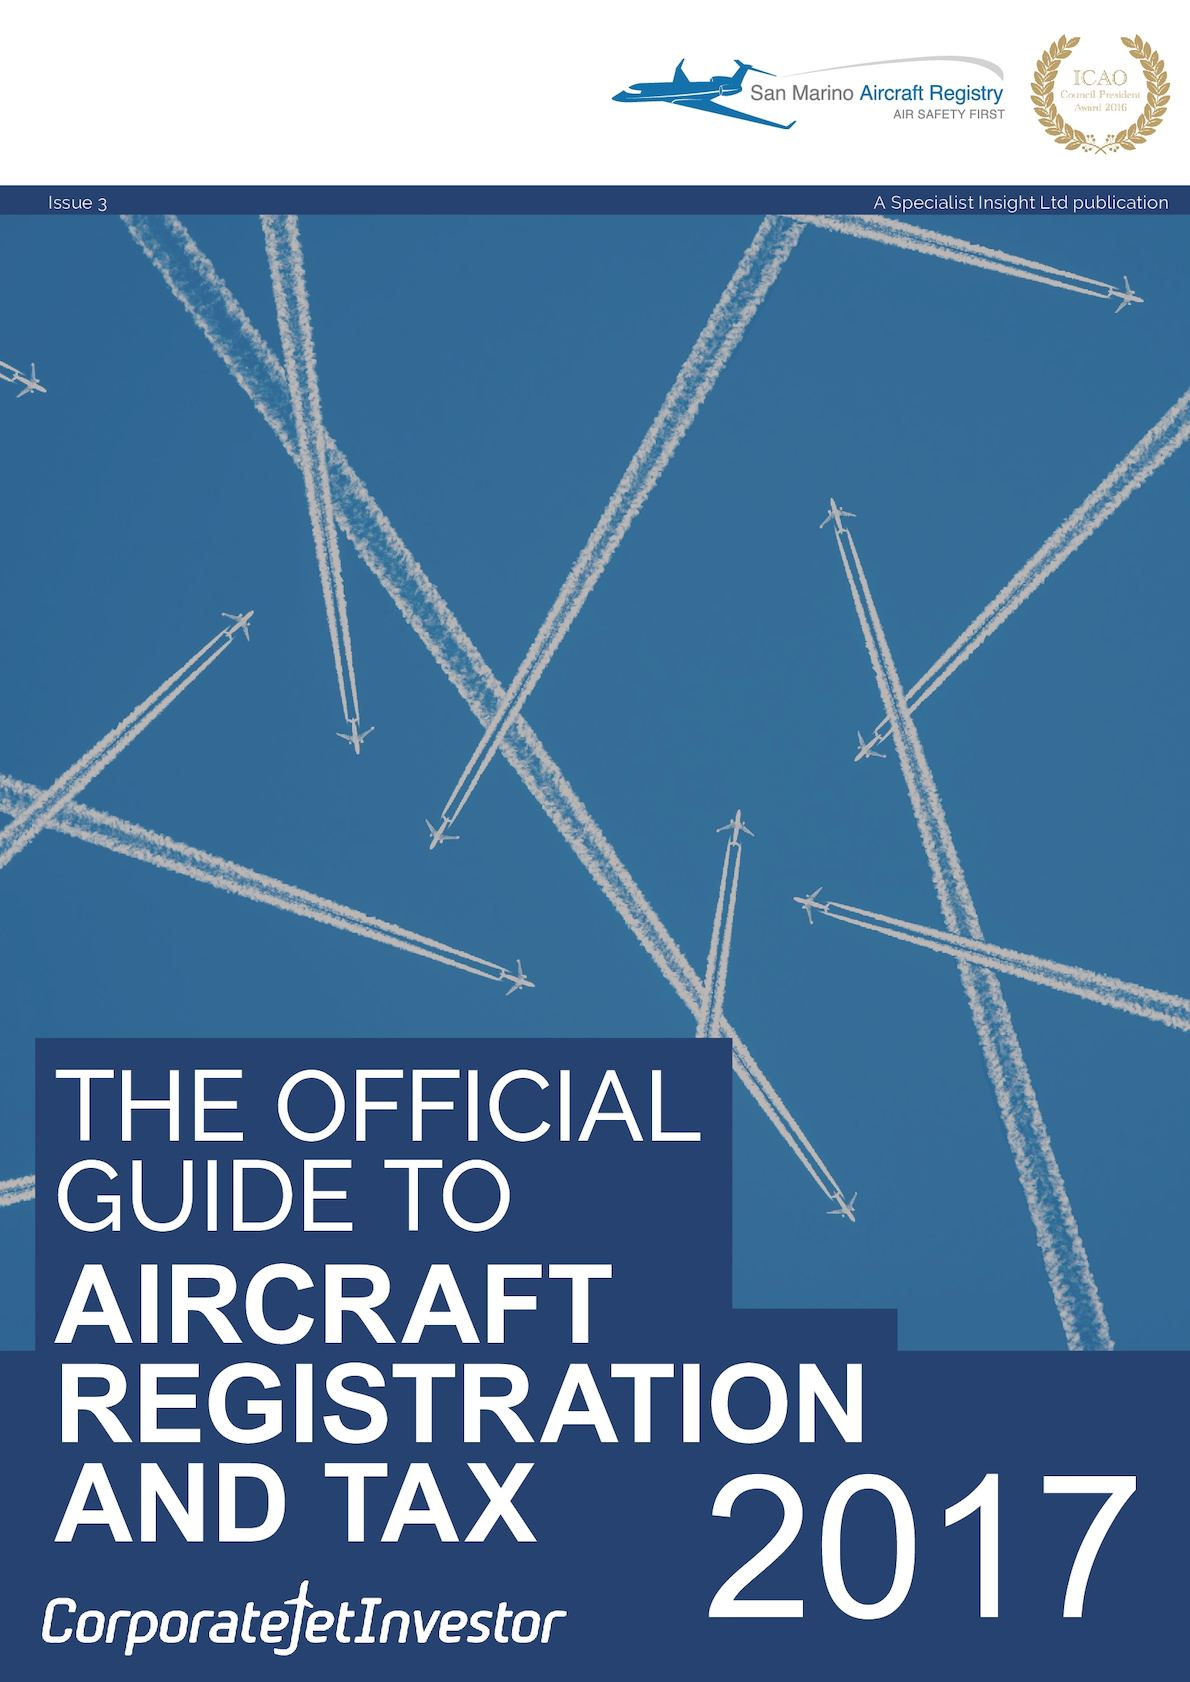 The Official Guide to Aircraft Registration and Tax 2017